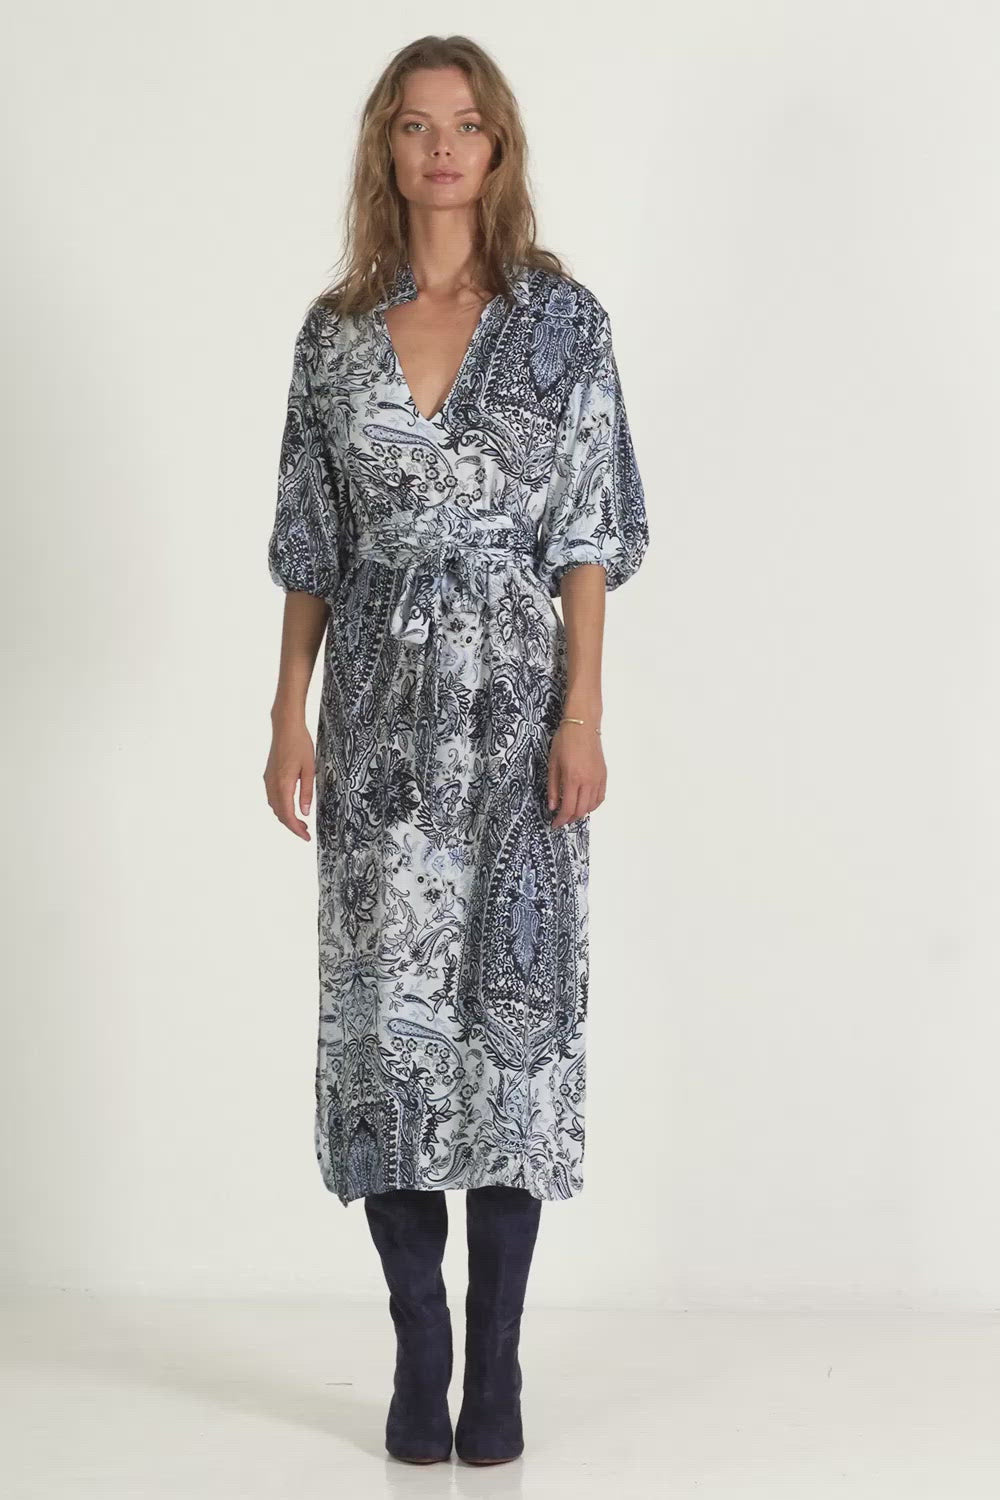 A woman wearing a Calma paisley maxi dress by Lilya for winter